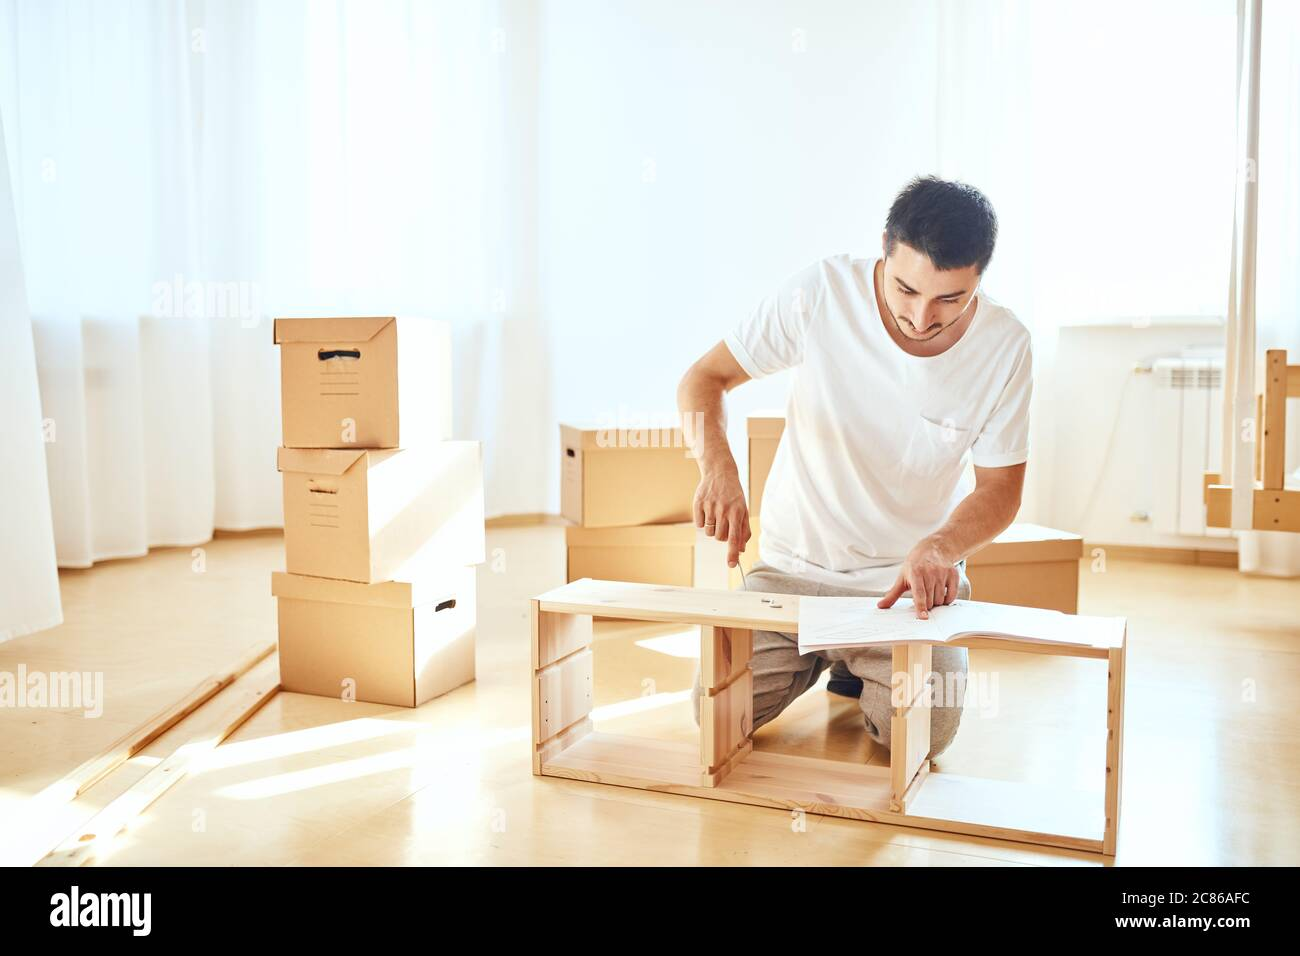 Concentrated Young Man Reading Instructions To Assemble Furniture At Home Stock Photo Alamy